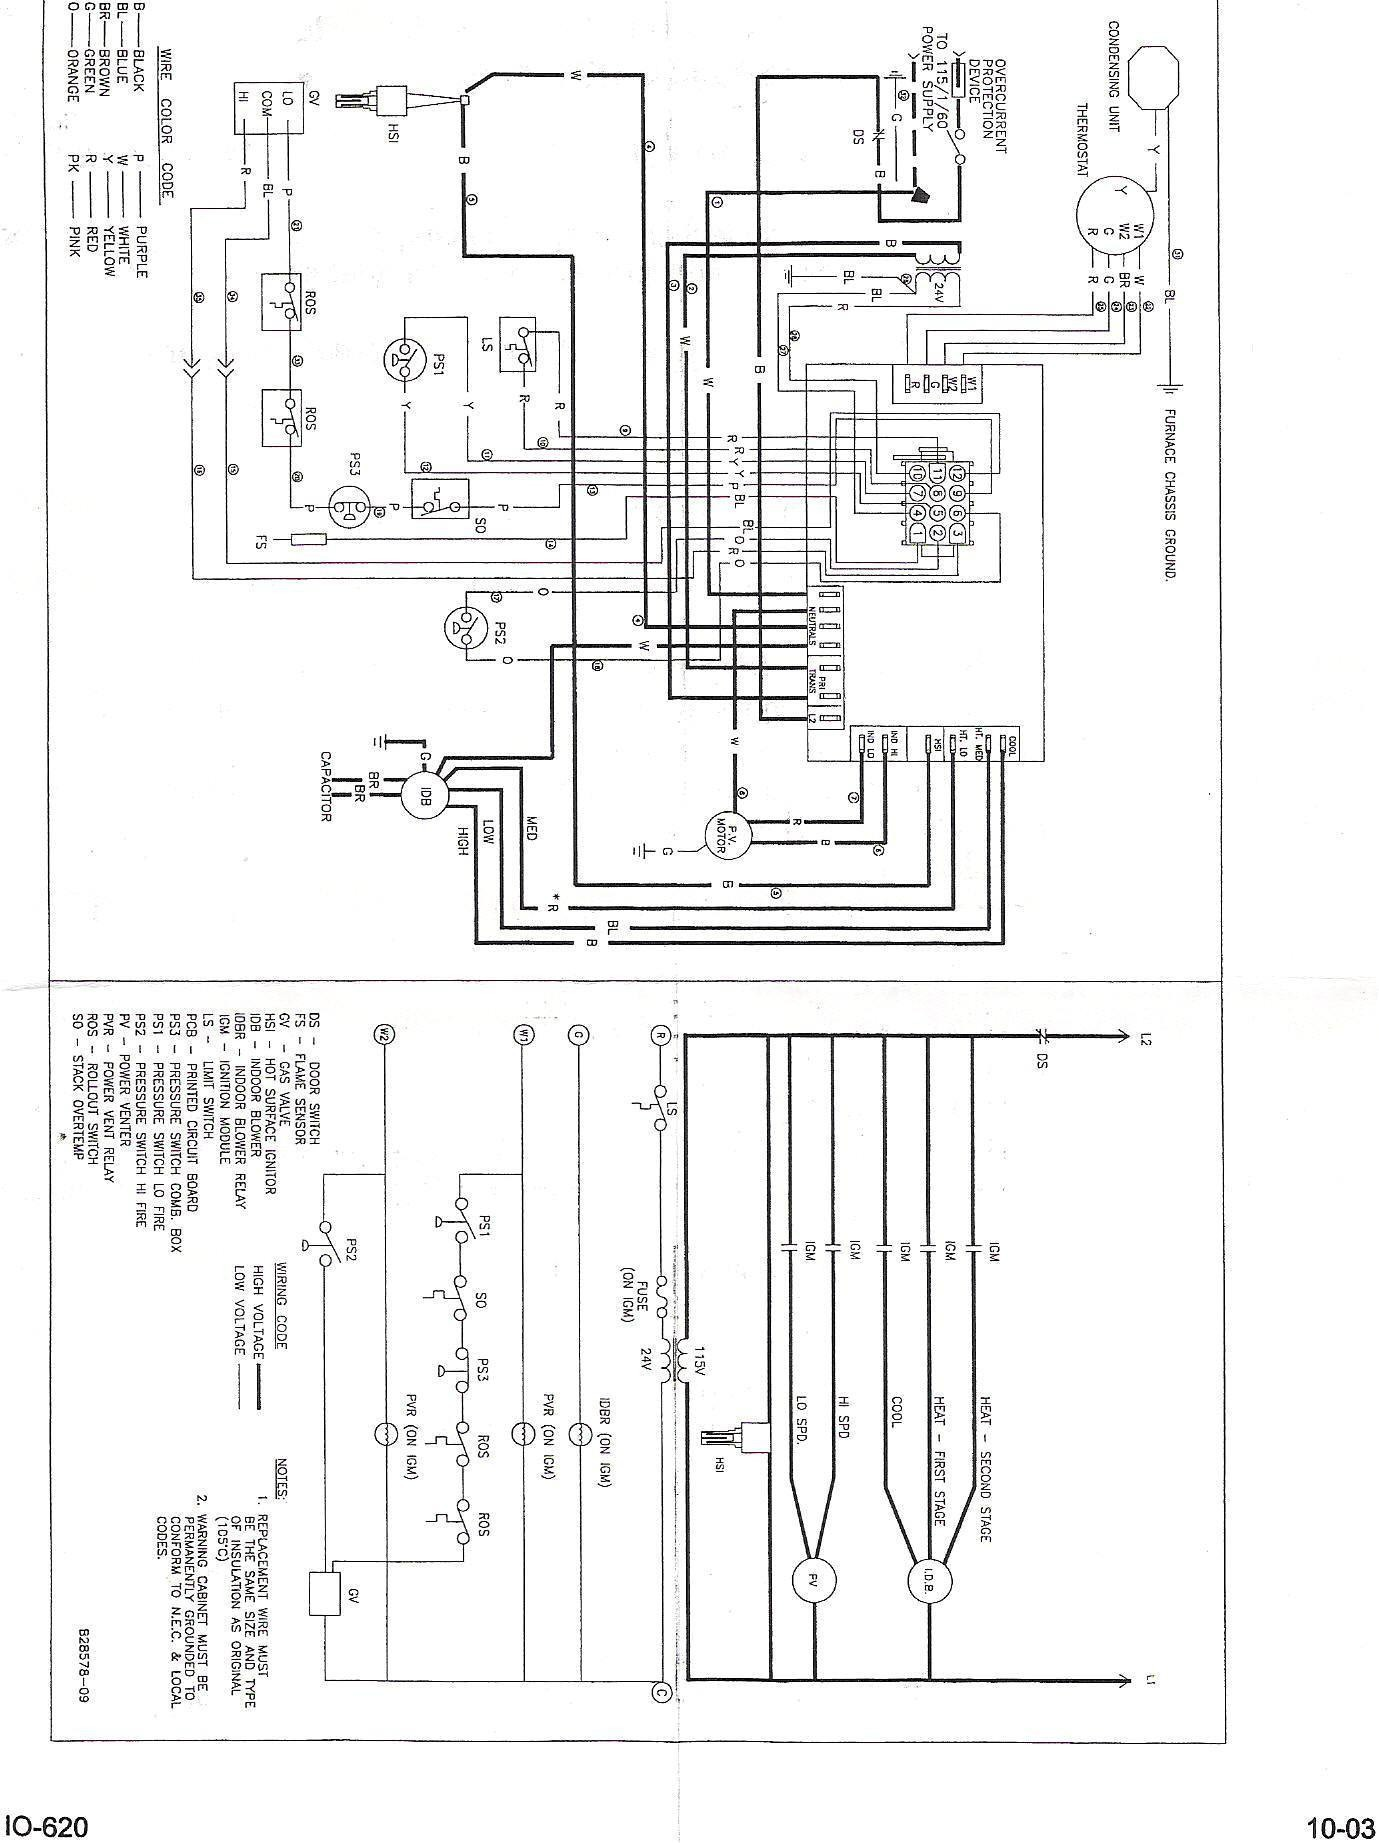 First pany Air Handler Wiring Diagram 2018 Ruud Air Handler Wiring Diagram 2018 Endearing Enchanting 8 Simple